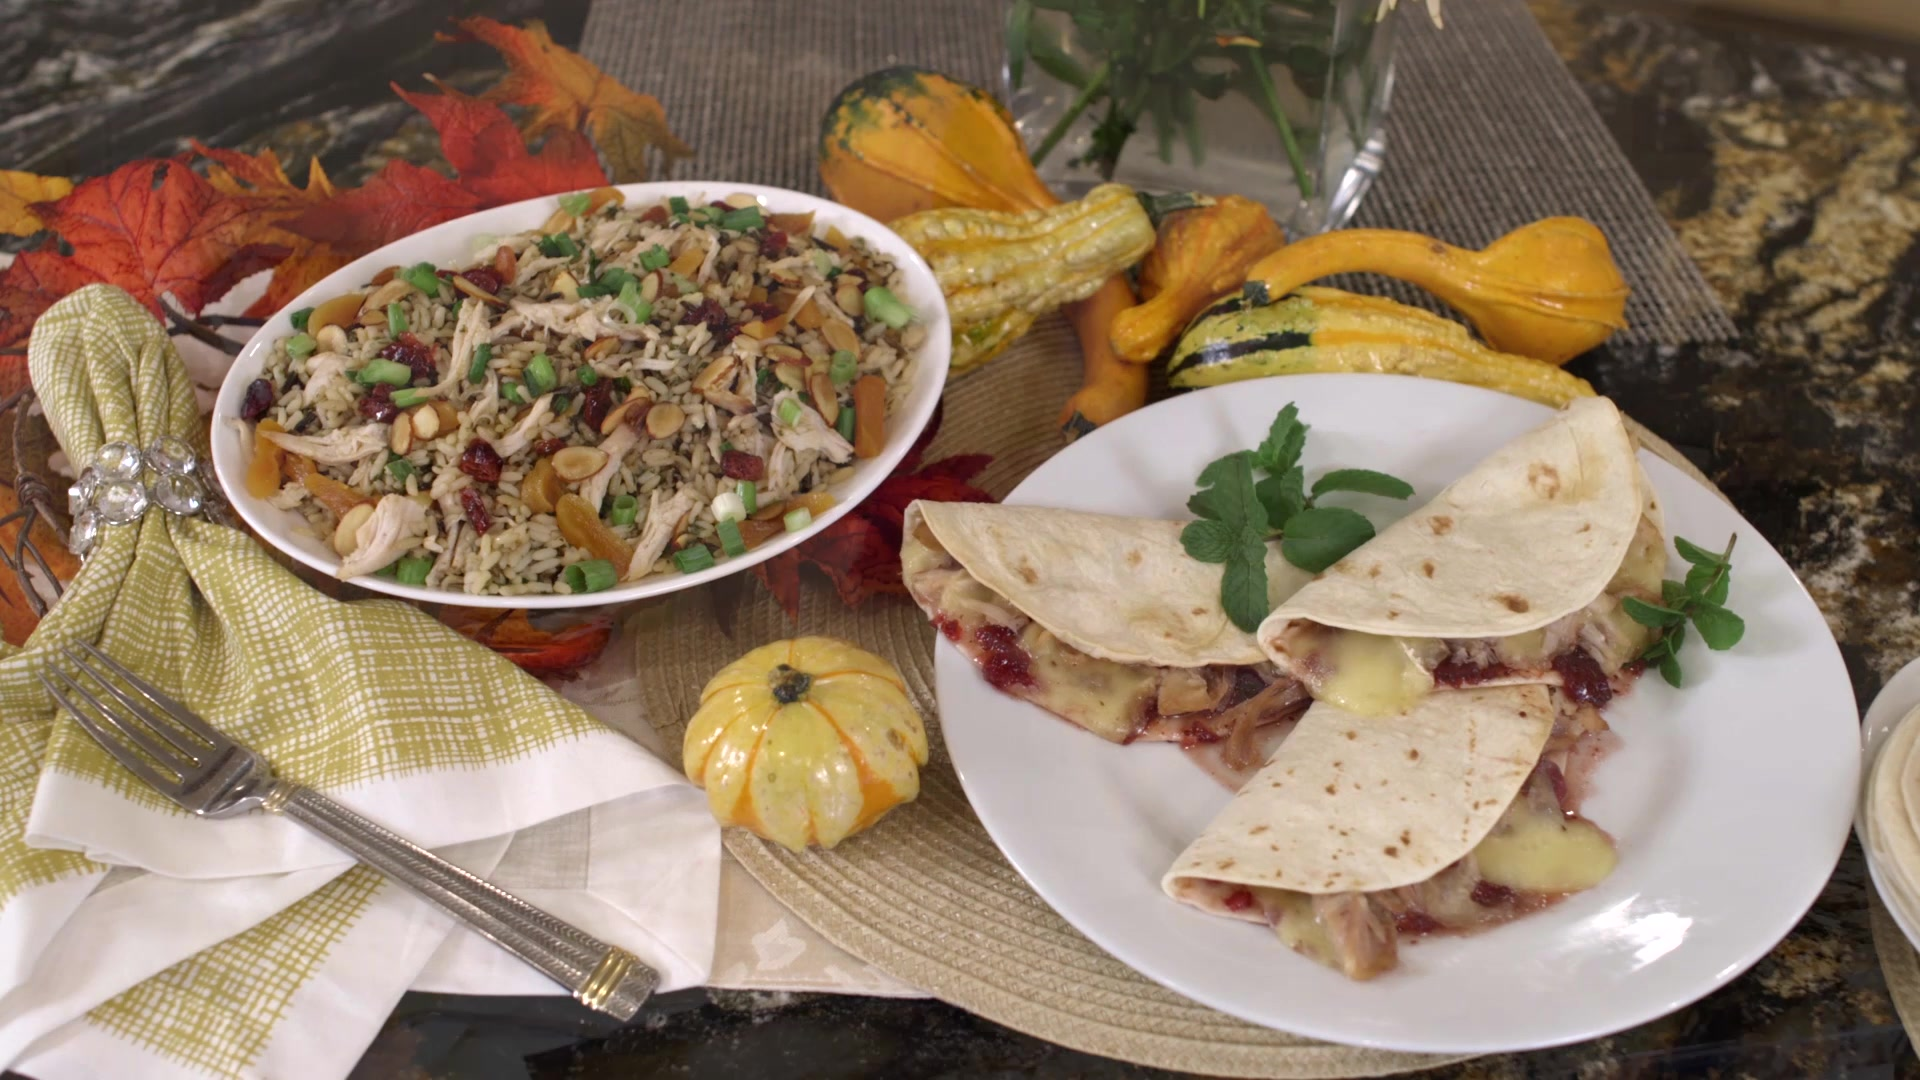 How to Use Leftover Turkey With a Twist